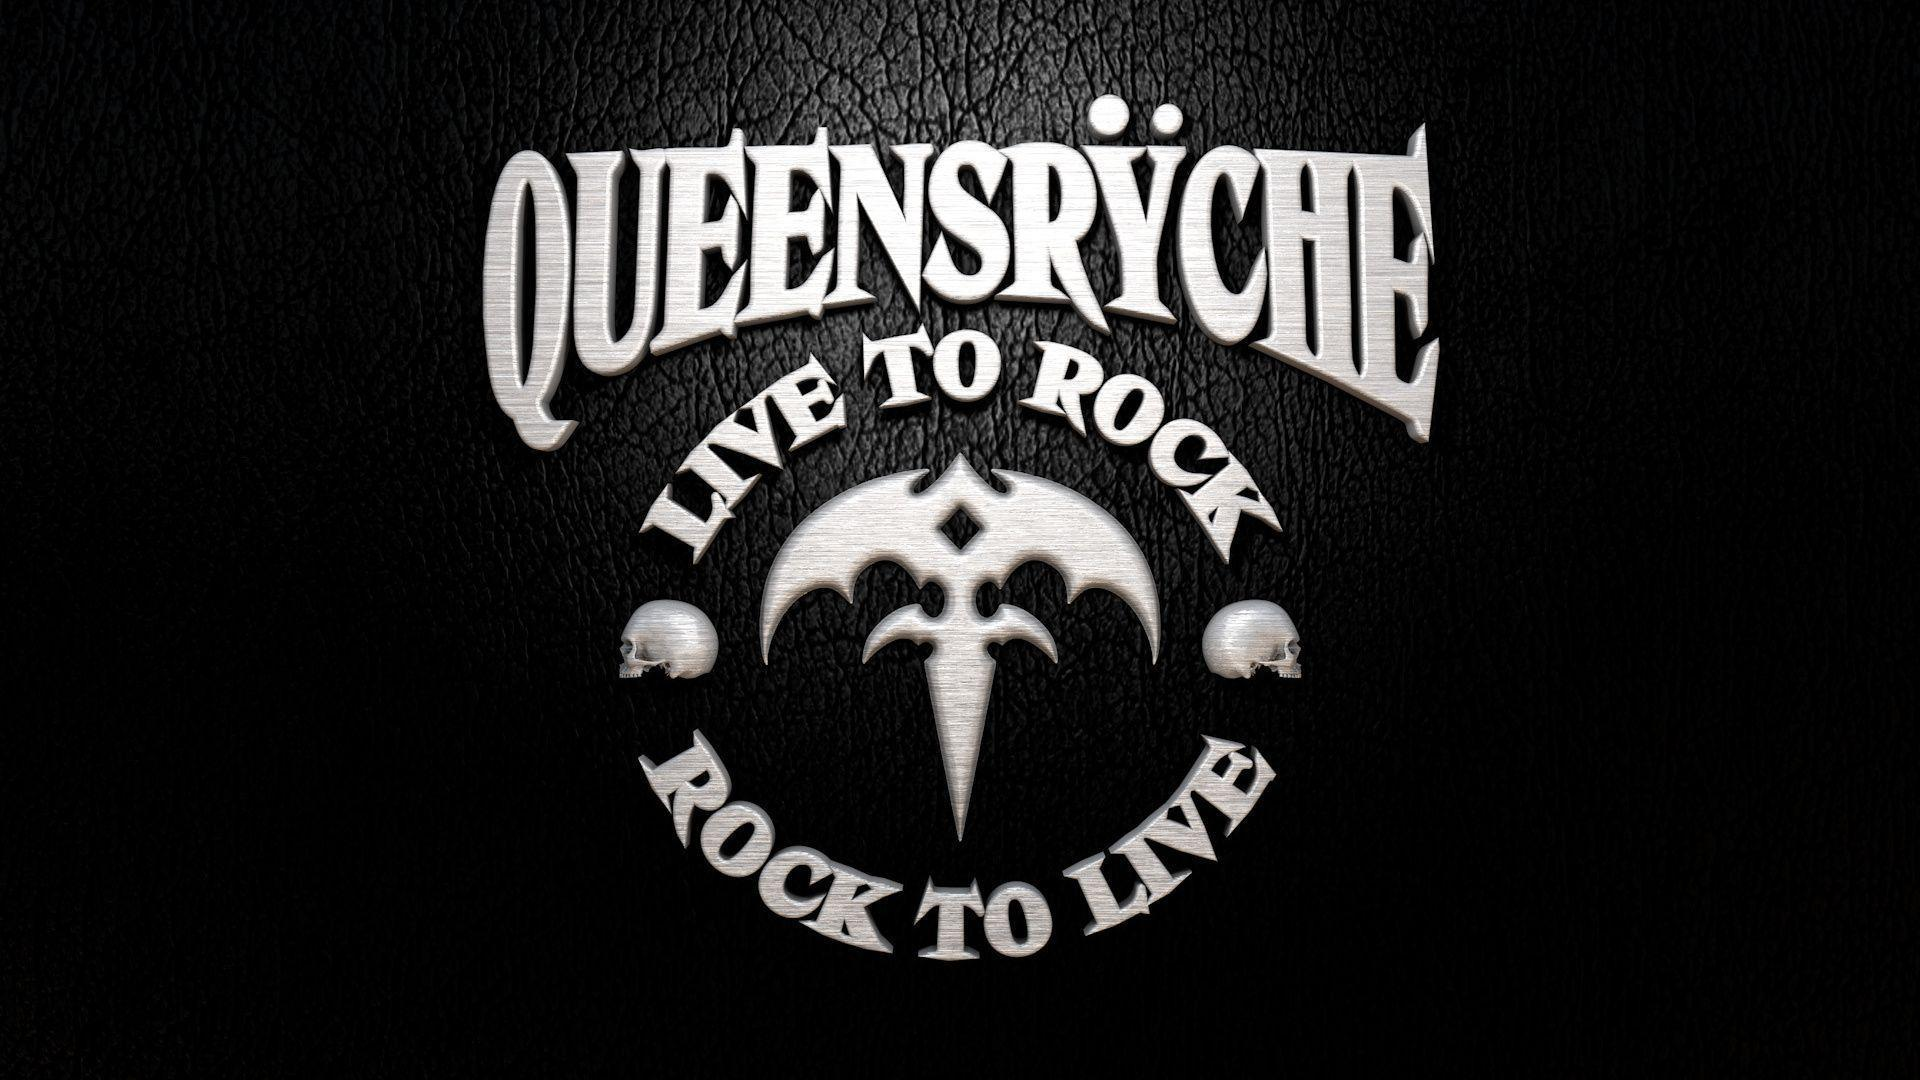 1920x1080 Music, Music Logo, Heavy Metal, Hard Rock, Queensryche